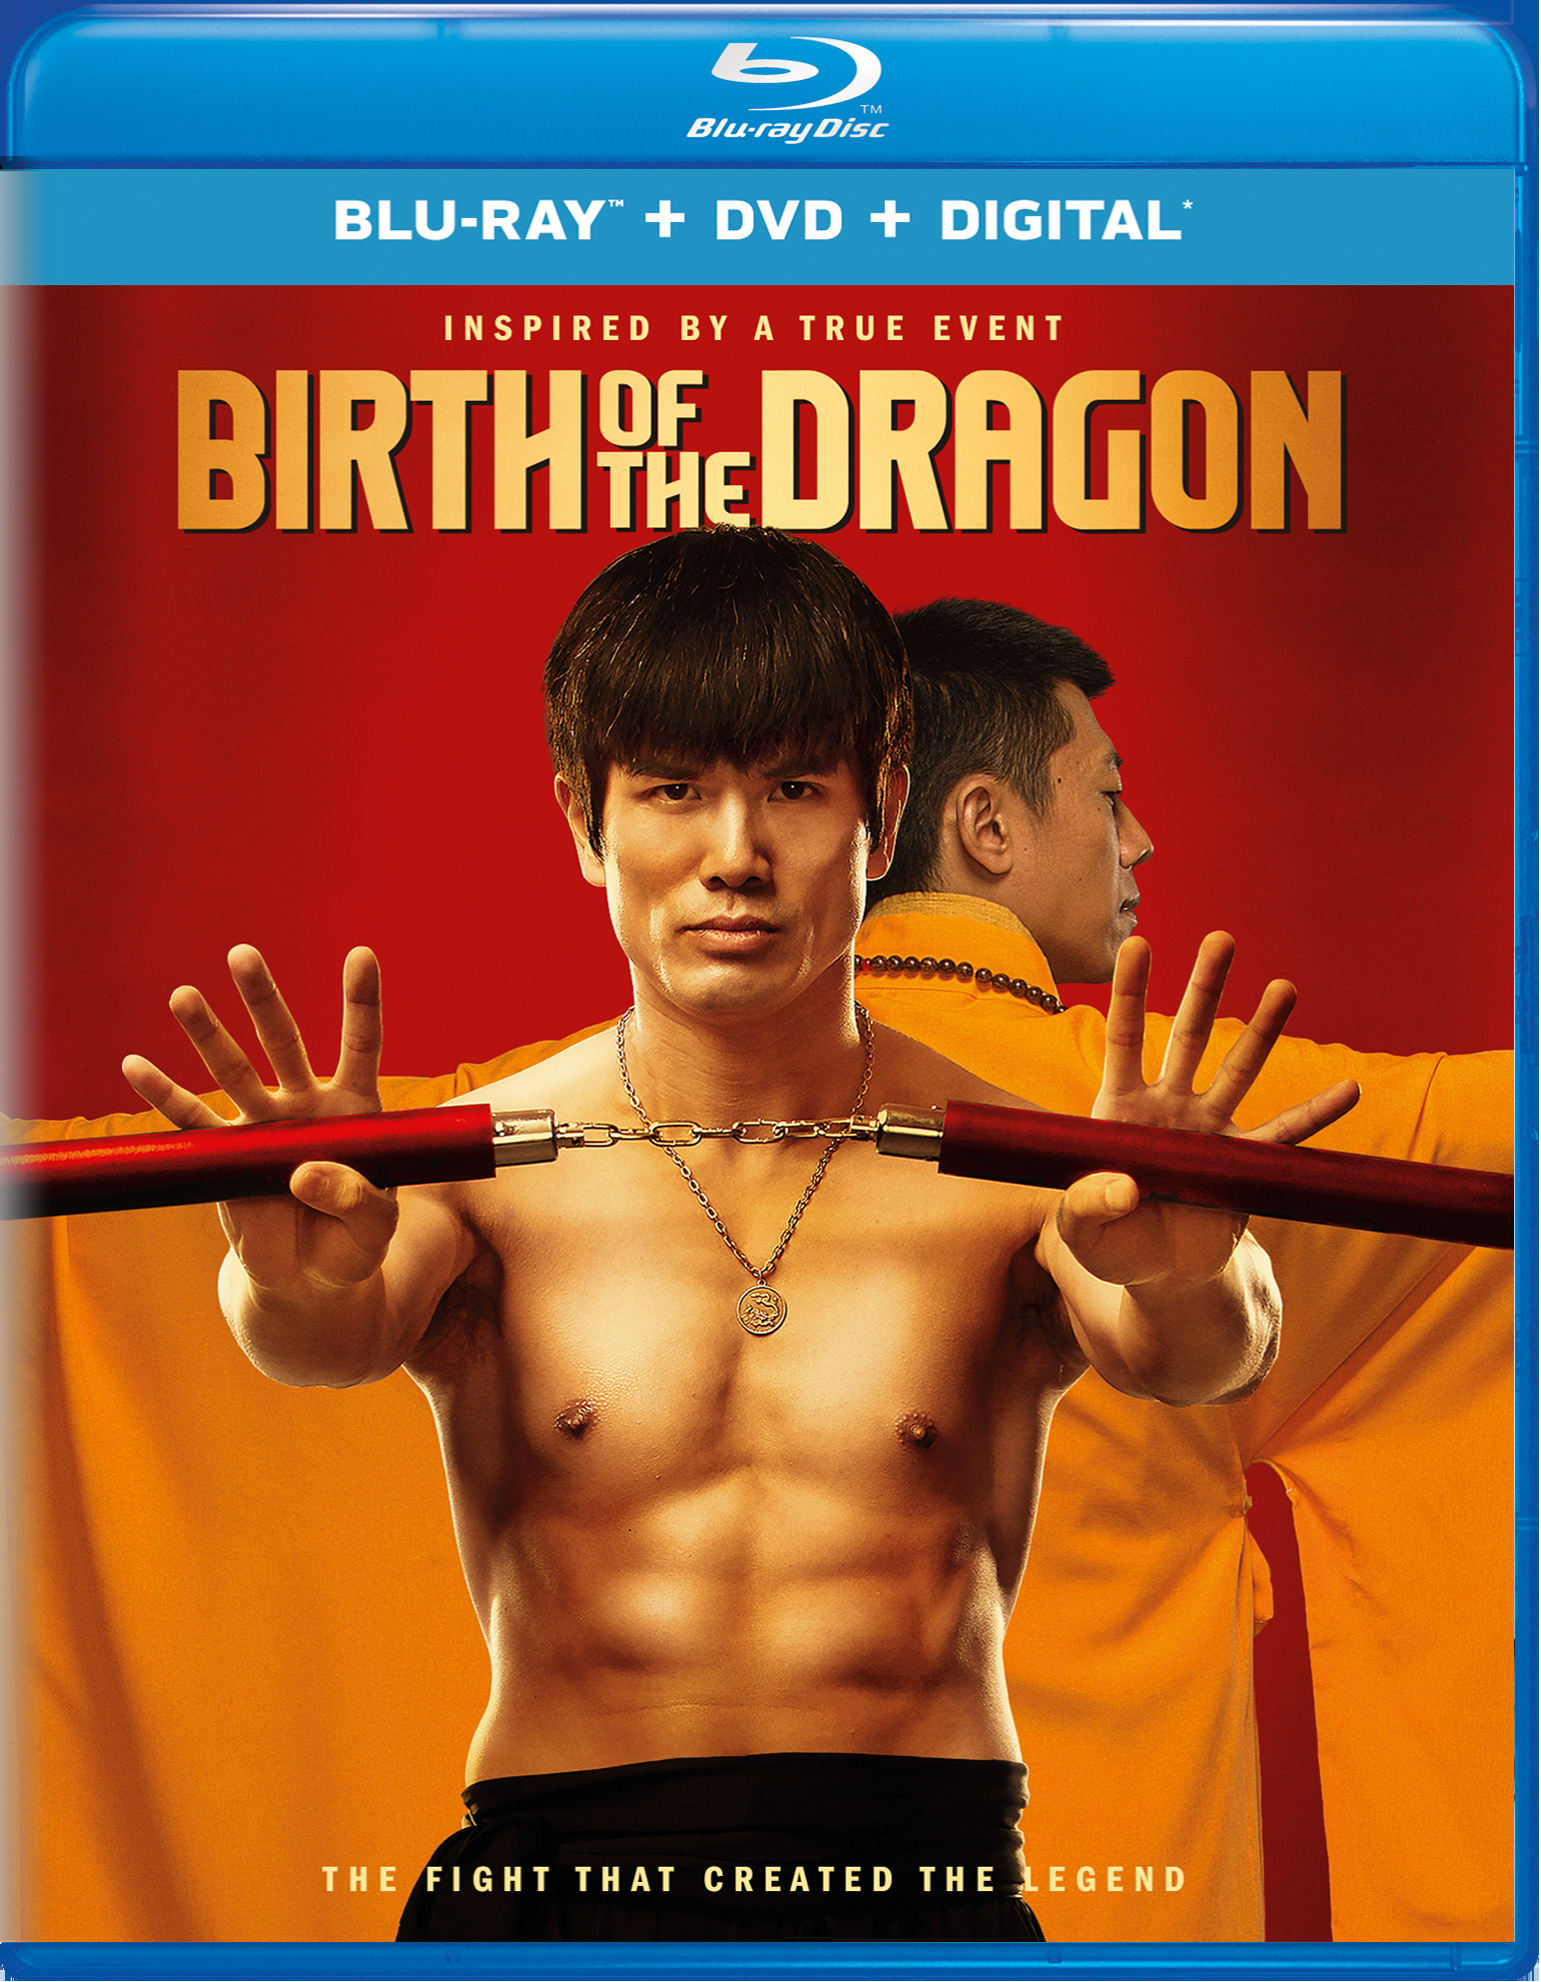 Birth of the Dragon (DVD + Digital) [Blu-ray]